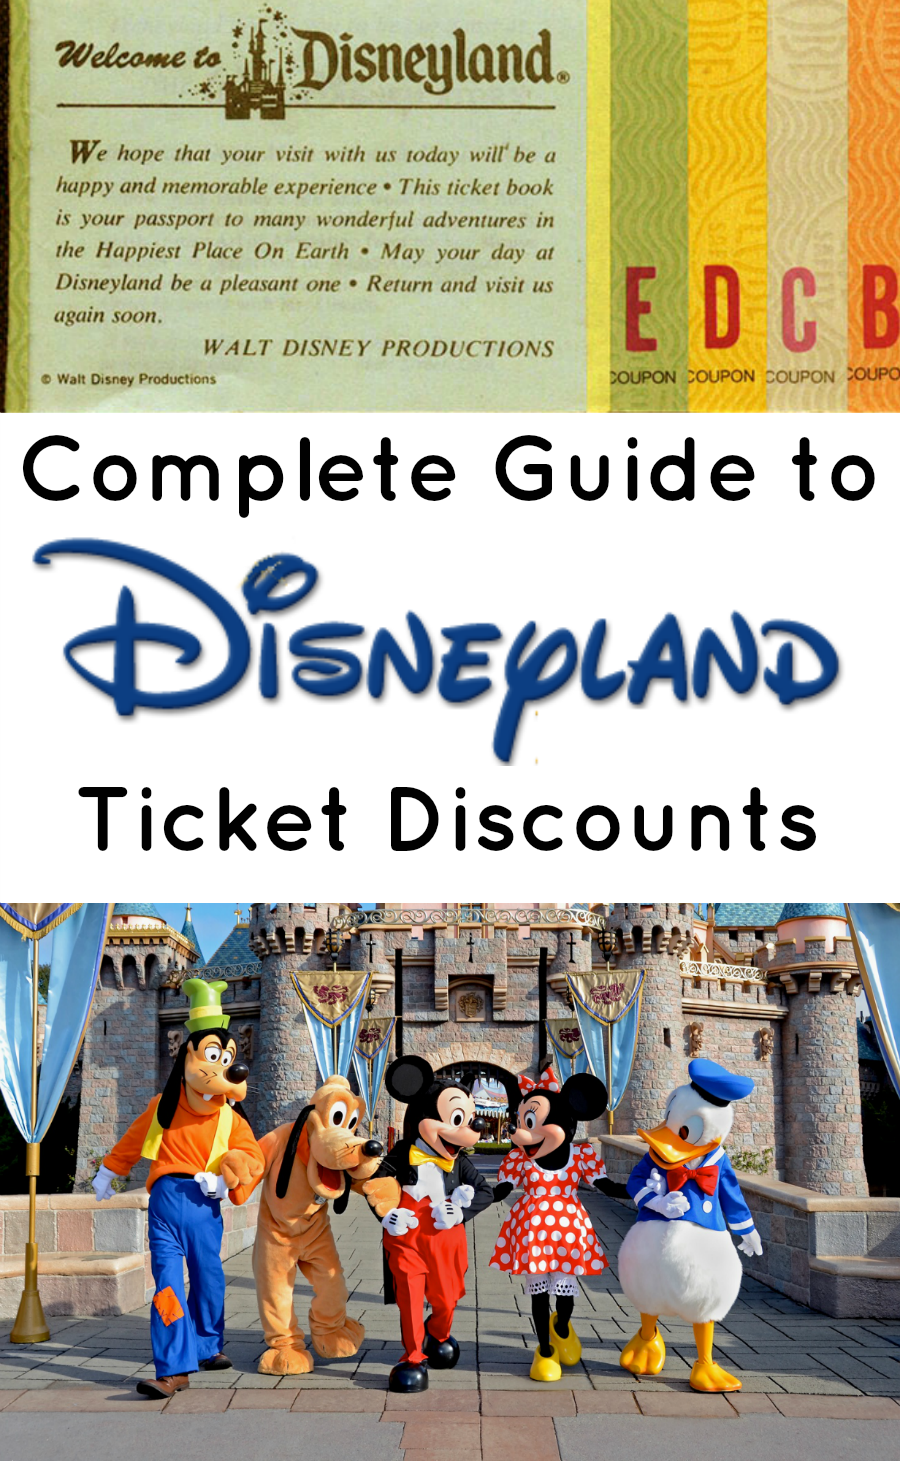 Discount Disneyland Ticket Deals 2020 Get Cheap Tickets Here Discount Disneyland Tickets Disneyland Discounts Disneyland Tickets